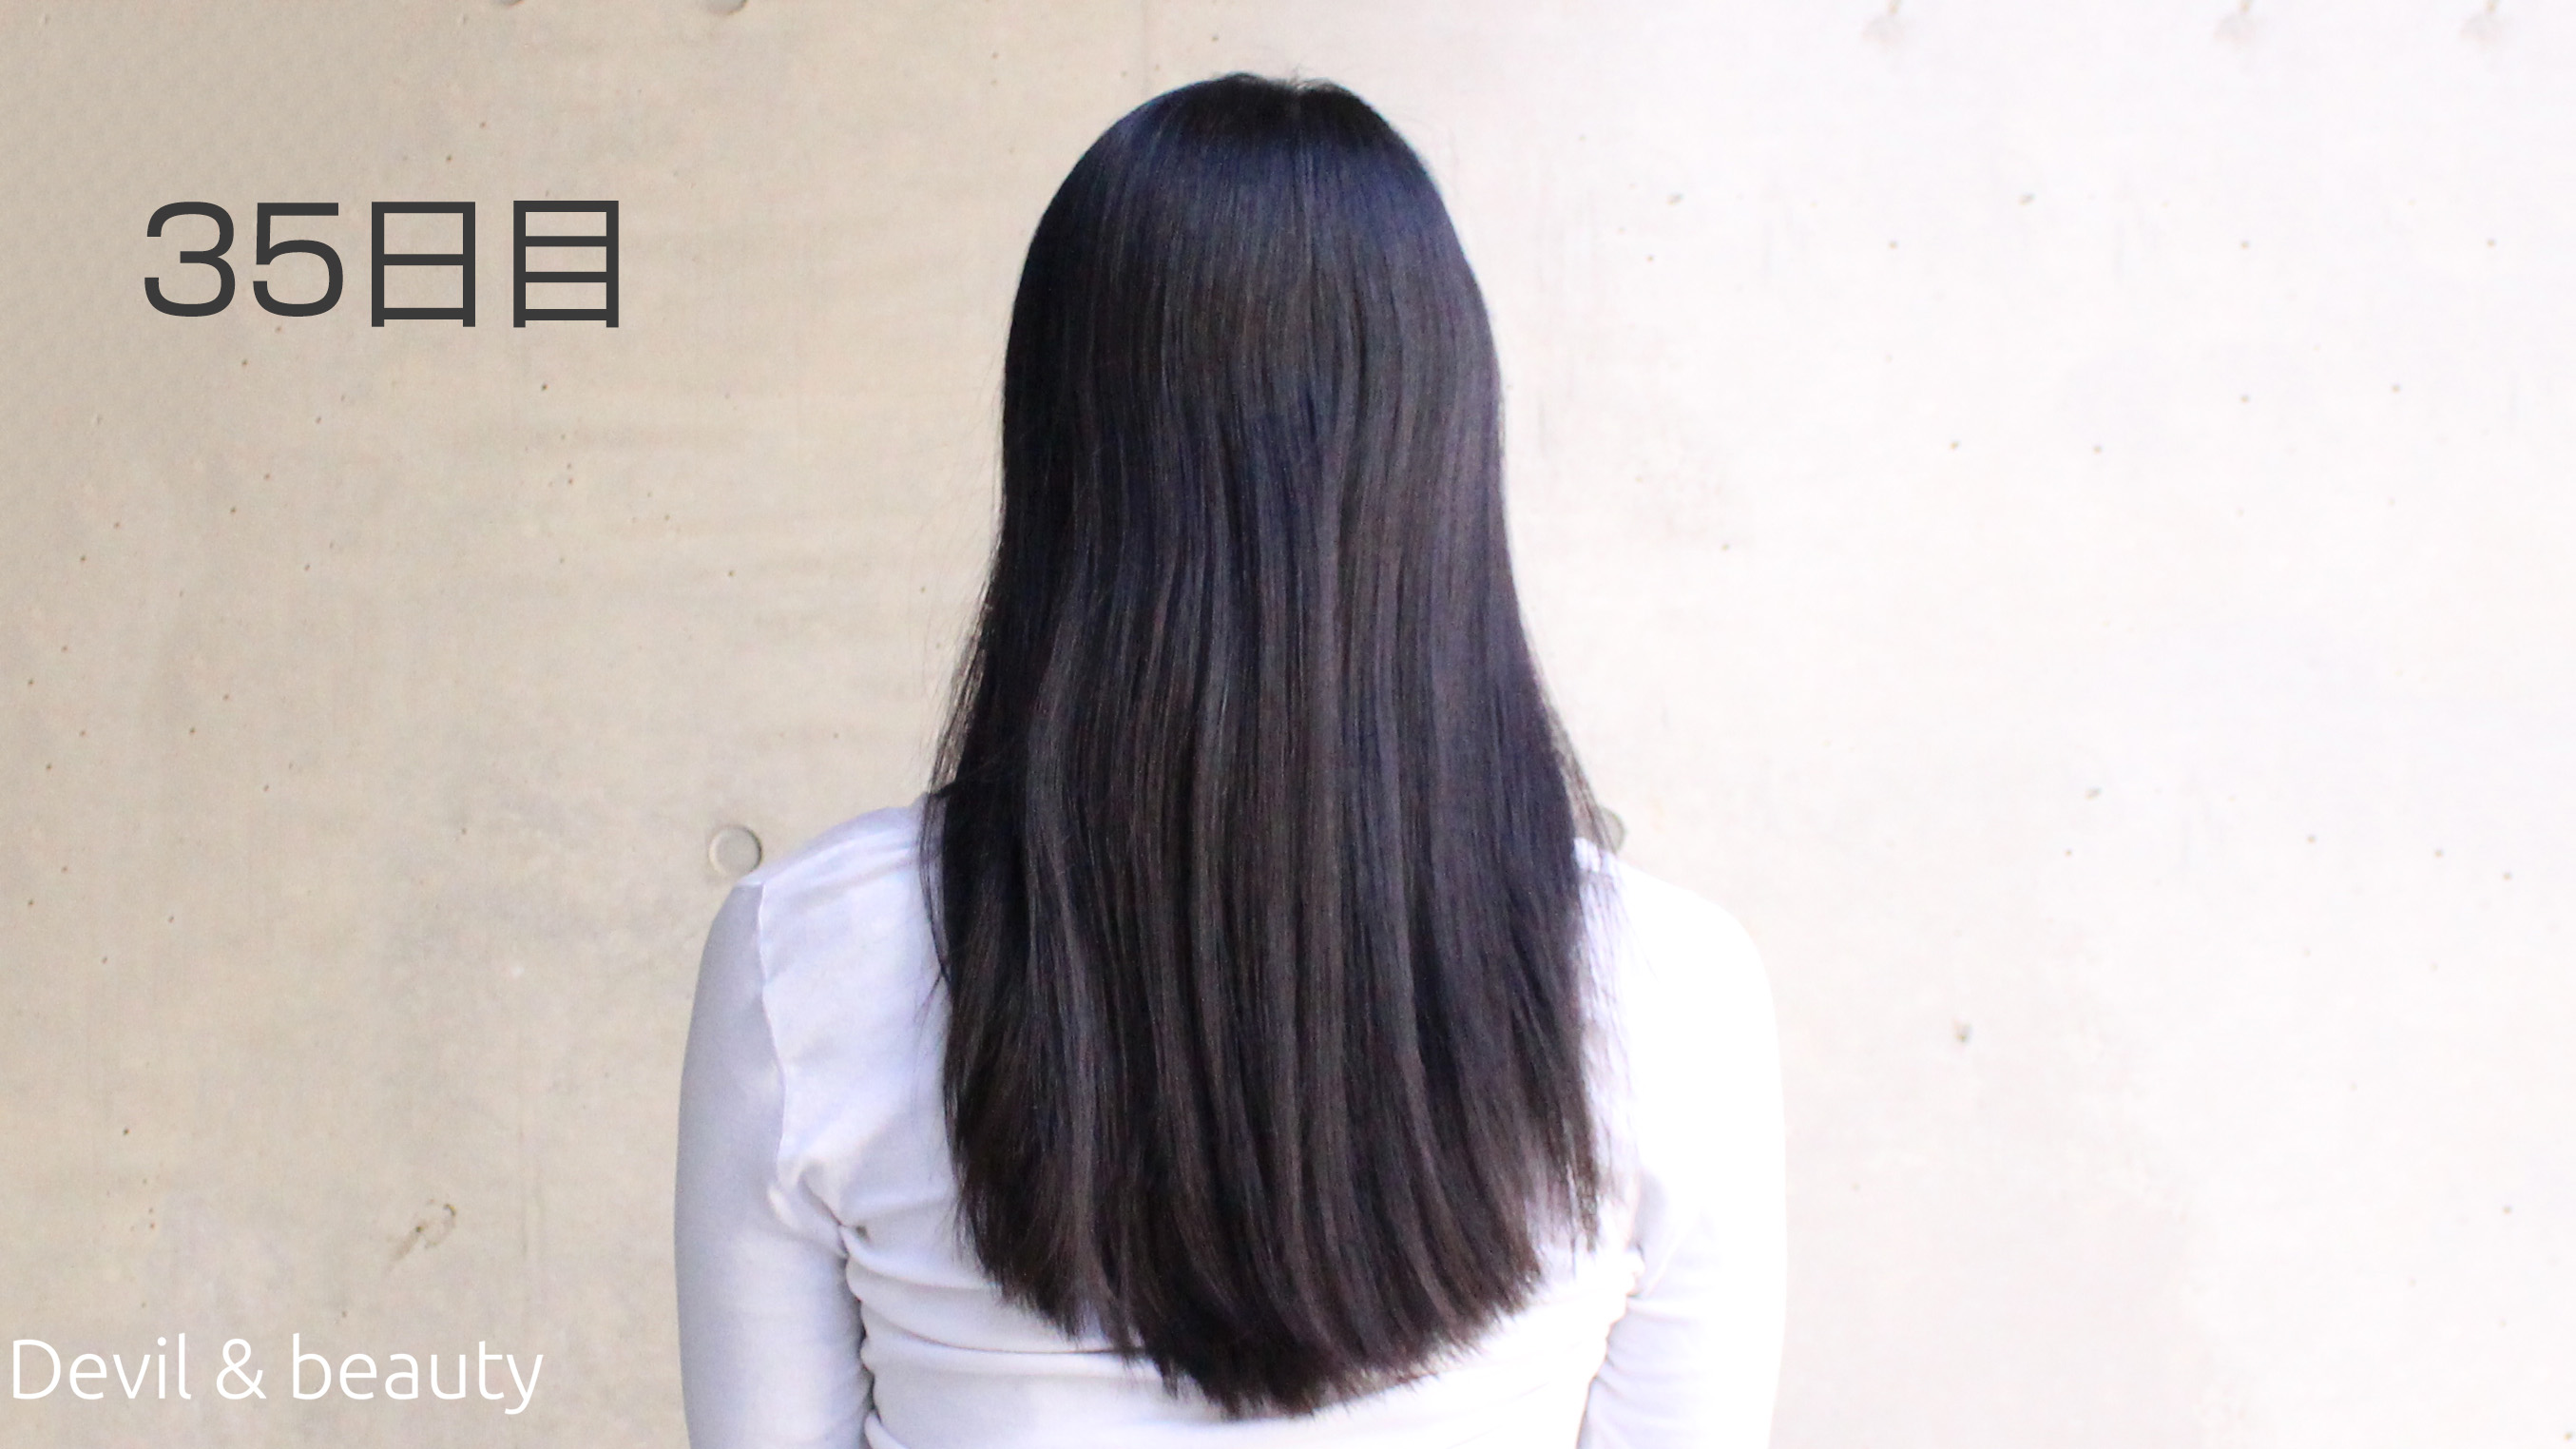 hairbeauron-straight-day-35 - image